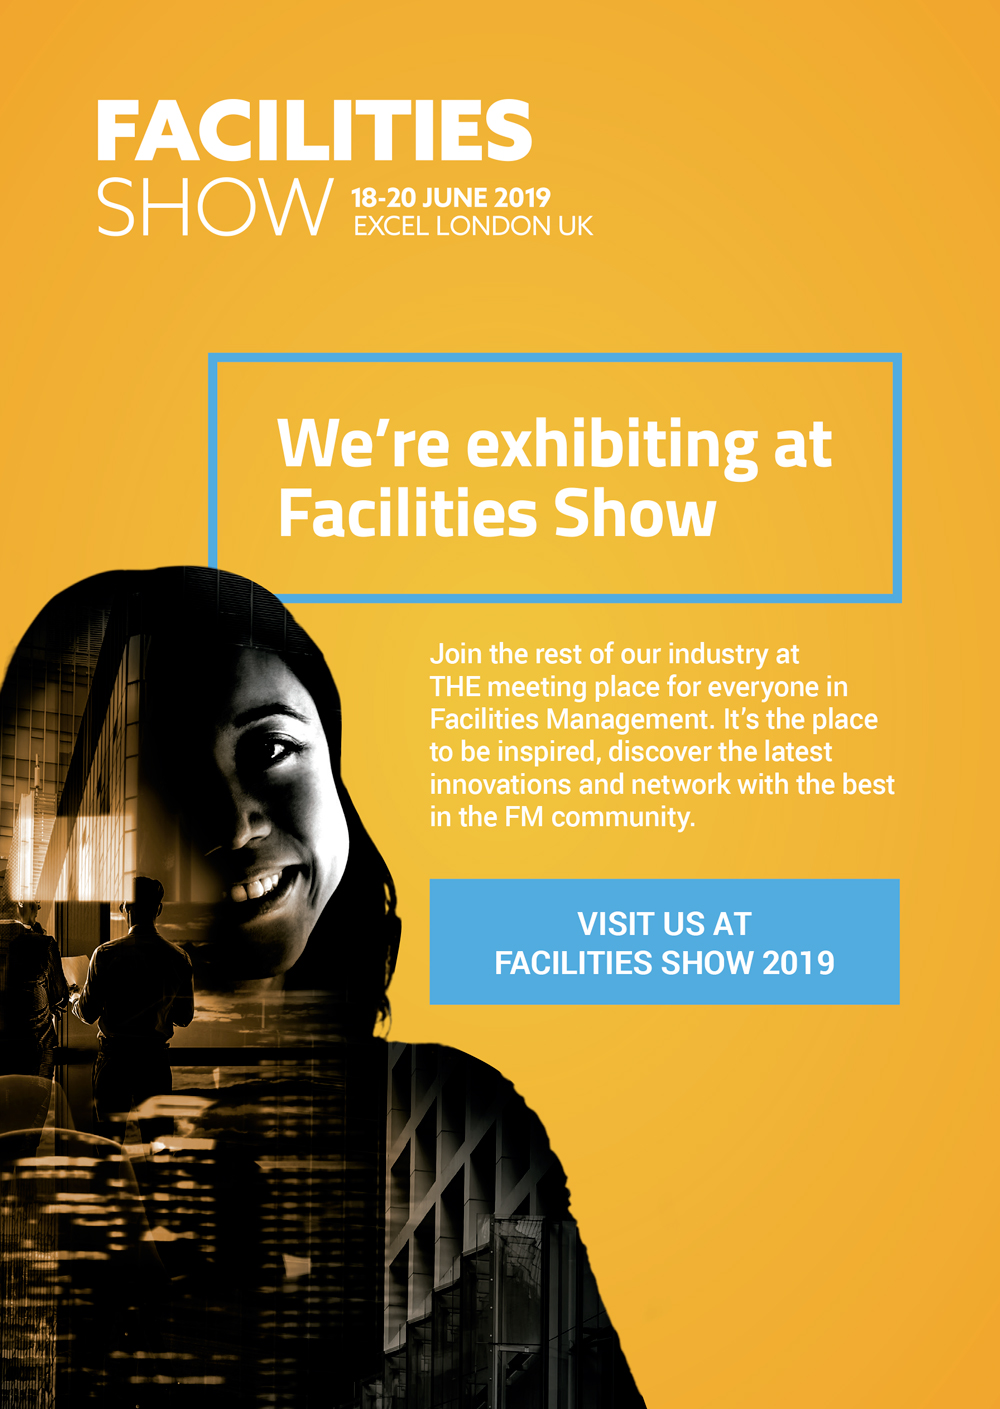 Facilities Show 2019 Image